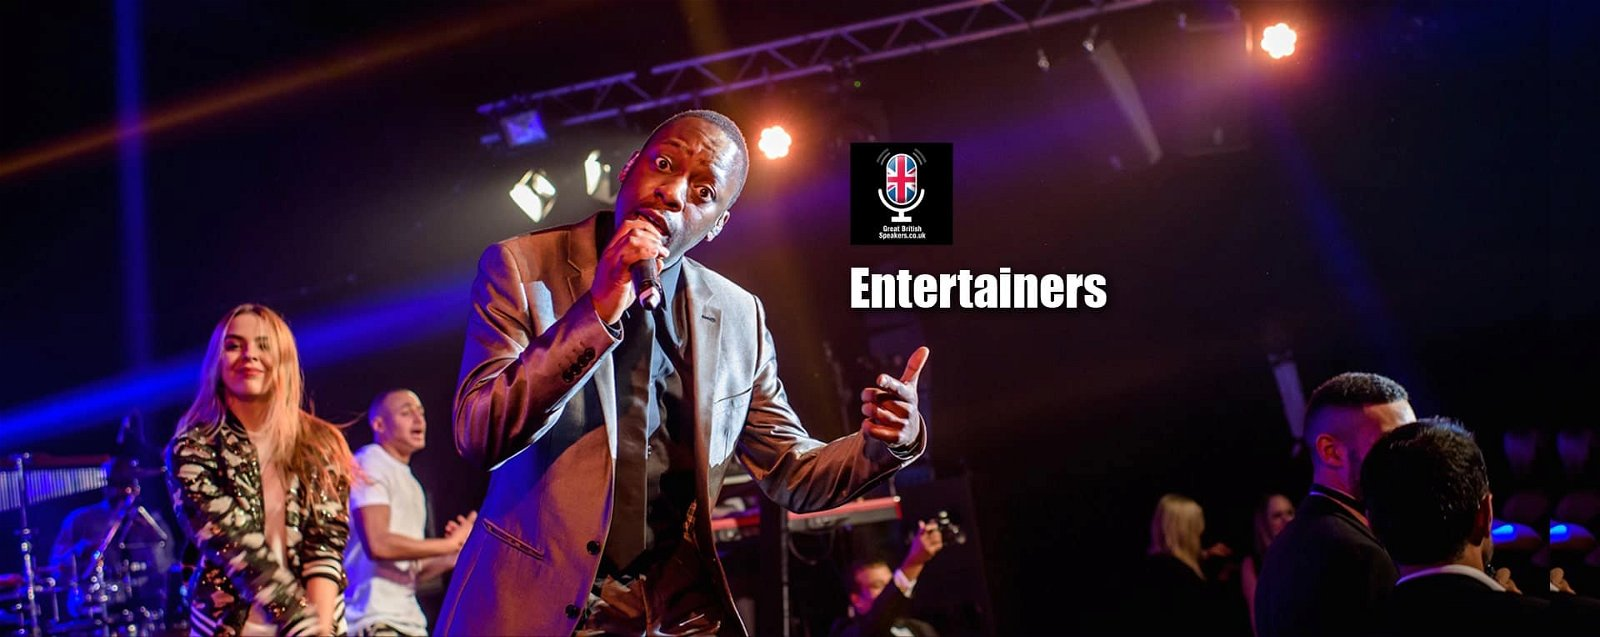 Entertainers Slider Great British Speakers-min